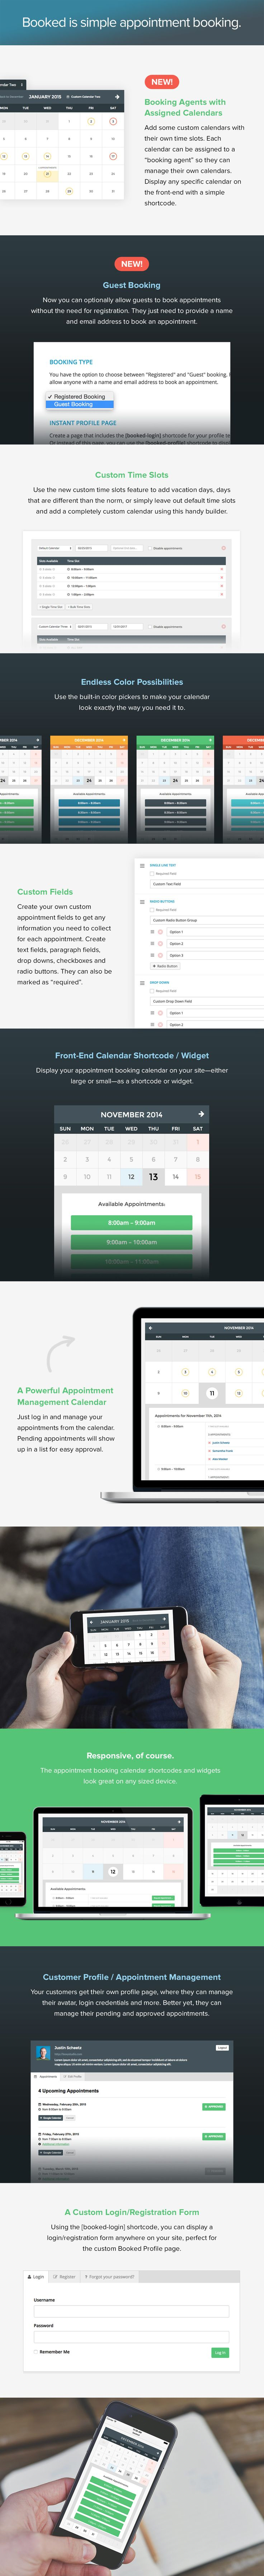 Booked - Appointment booking for easy-to-use appointment booking plugin for WordPress. Front-end and admin are both fully responsive and Fully translatable. User can manage their own booking and account information.